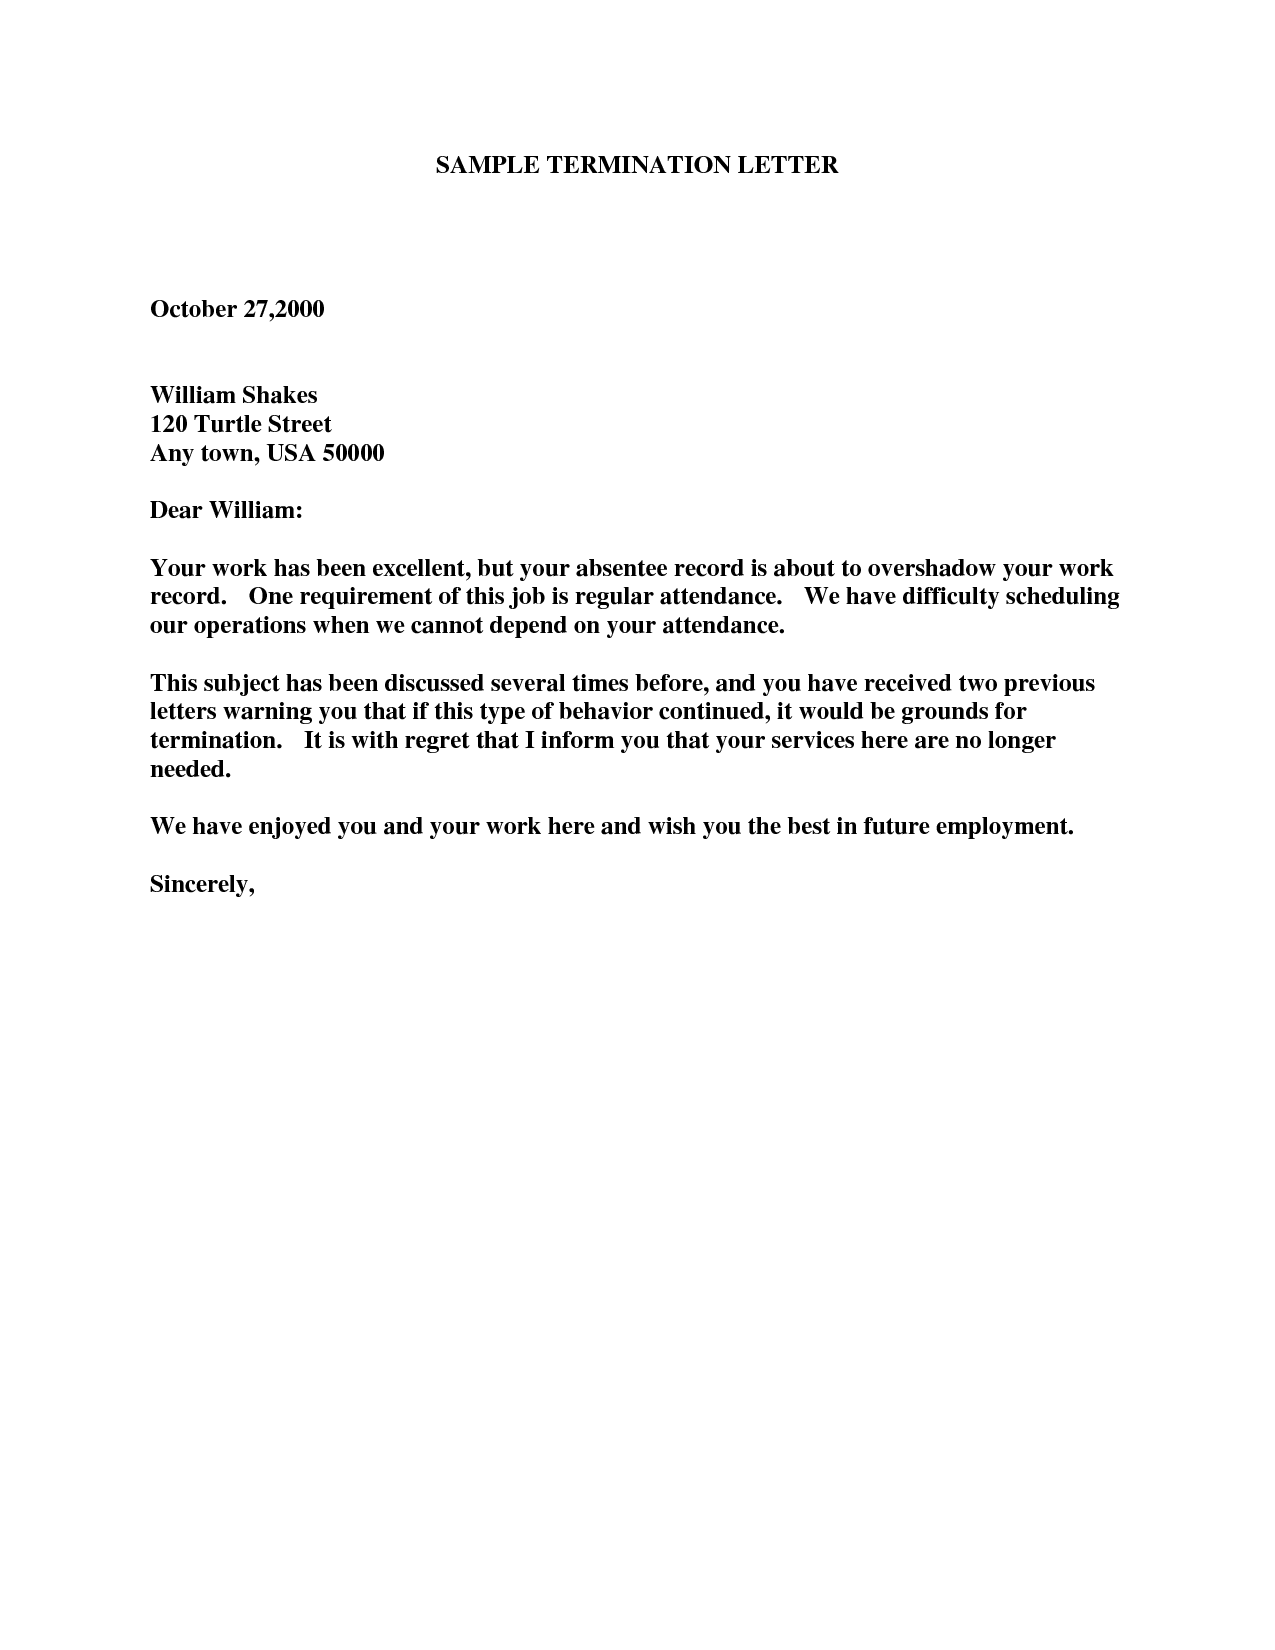 at will employee termination letter